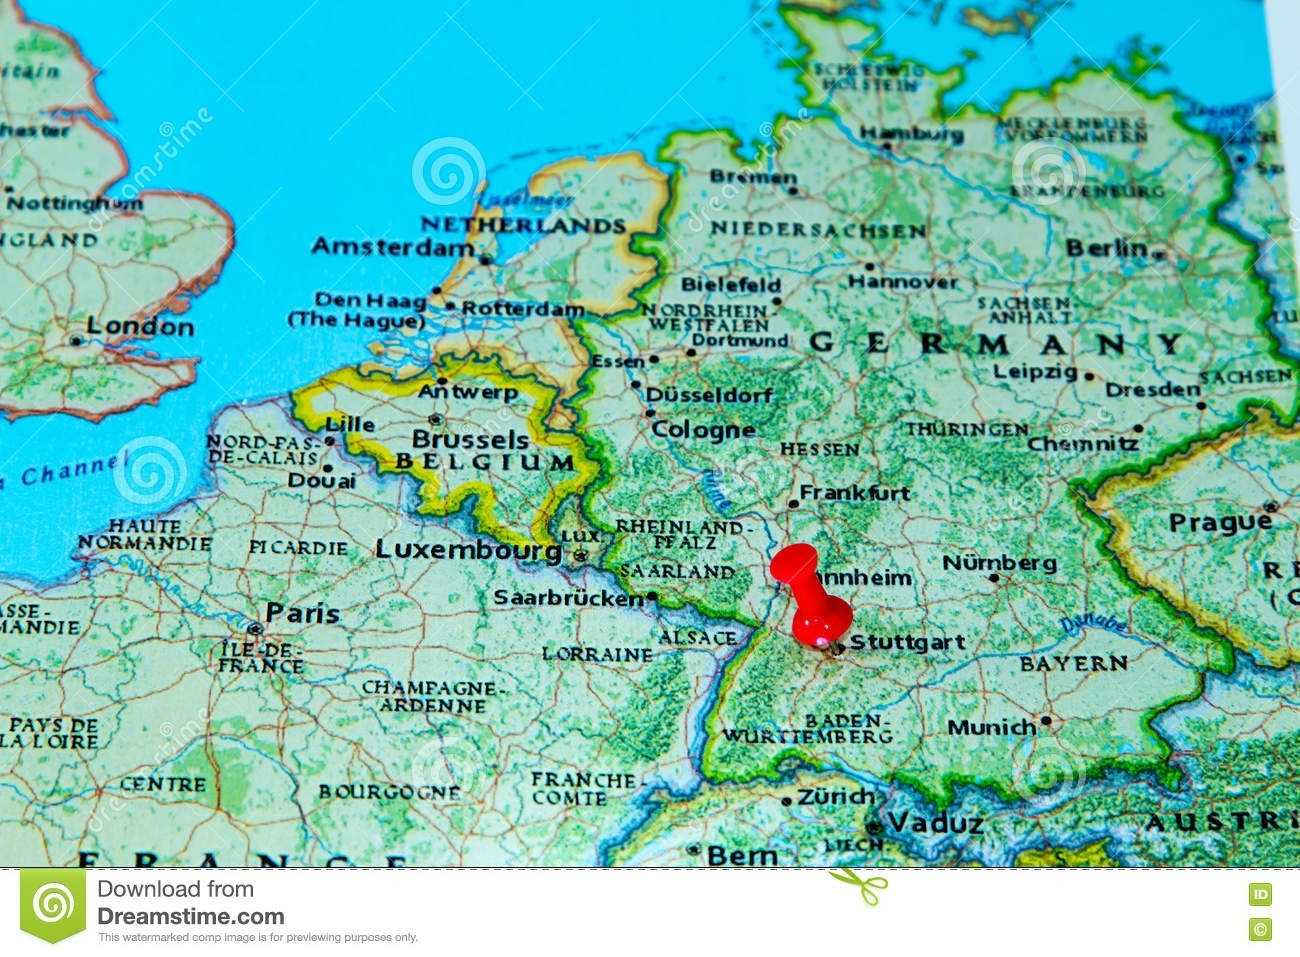 Stuttgart, Germany Pinned On A Map Of Europe Stock Photo intended for Stuttgart Germany On A Map